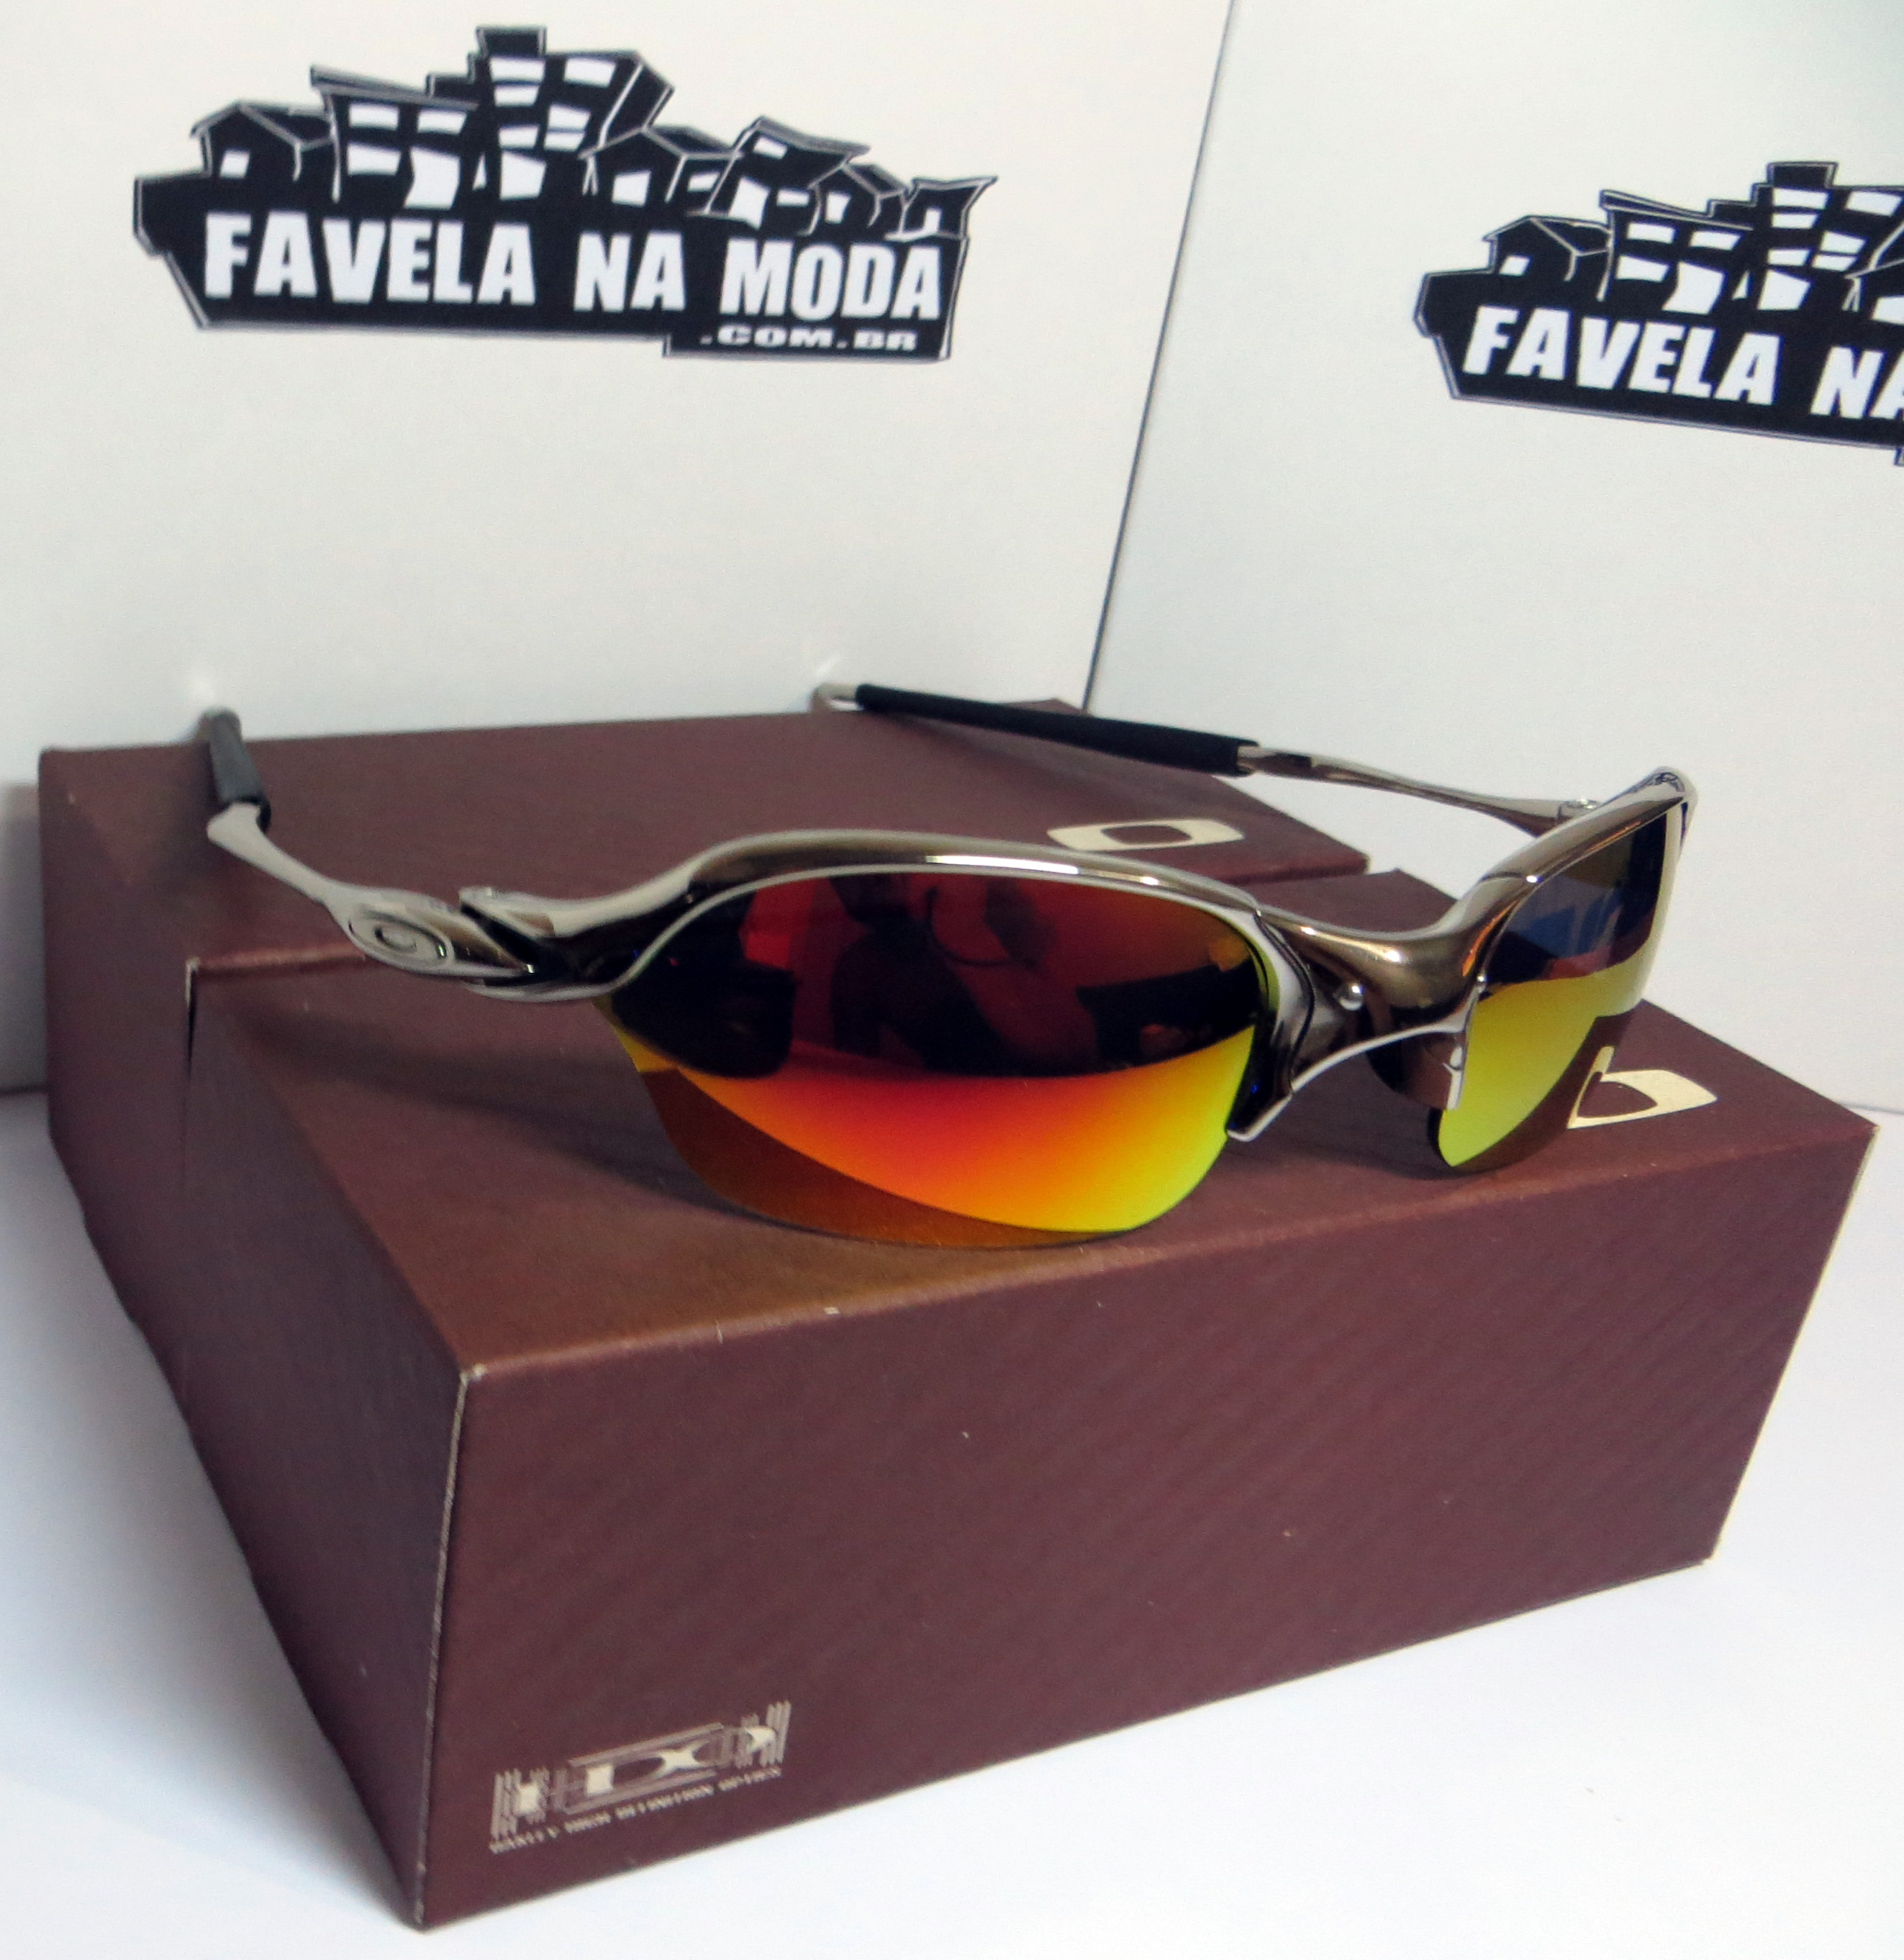 Óculos Oakley Romeo 2 - Polished   Dark Ruby   Borrachinhas Pretas - Favela  na Moda Imports 90067d8aac